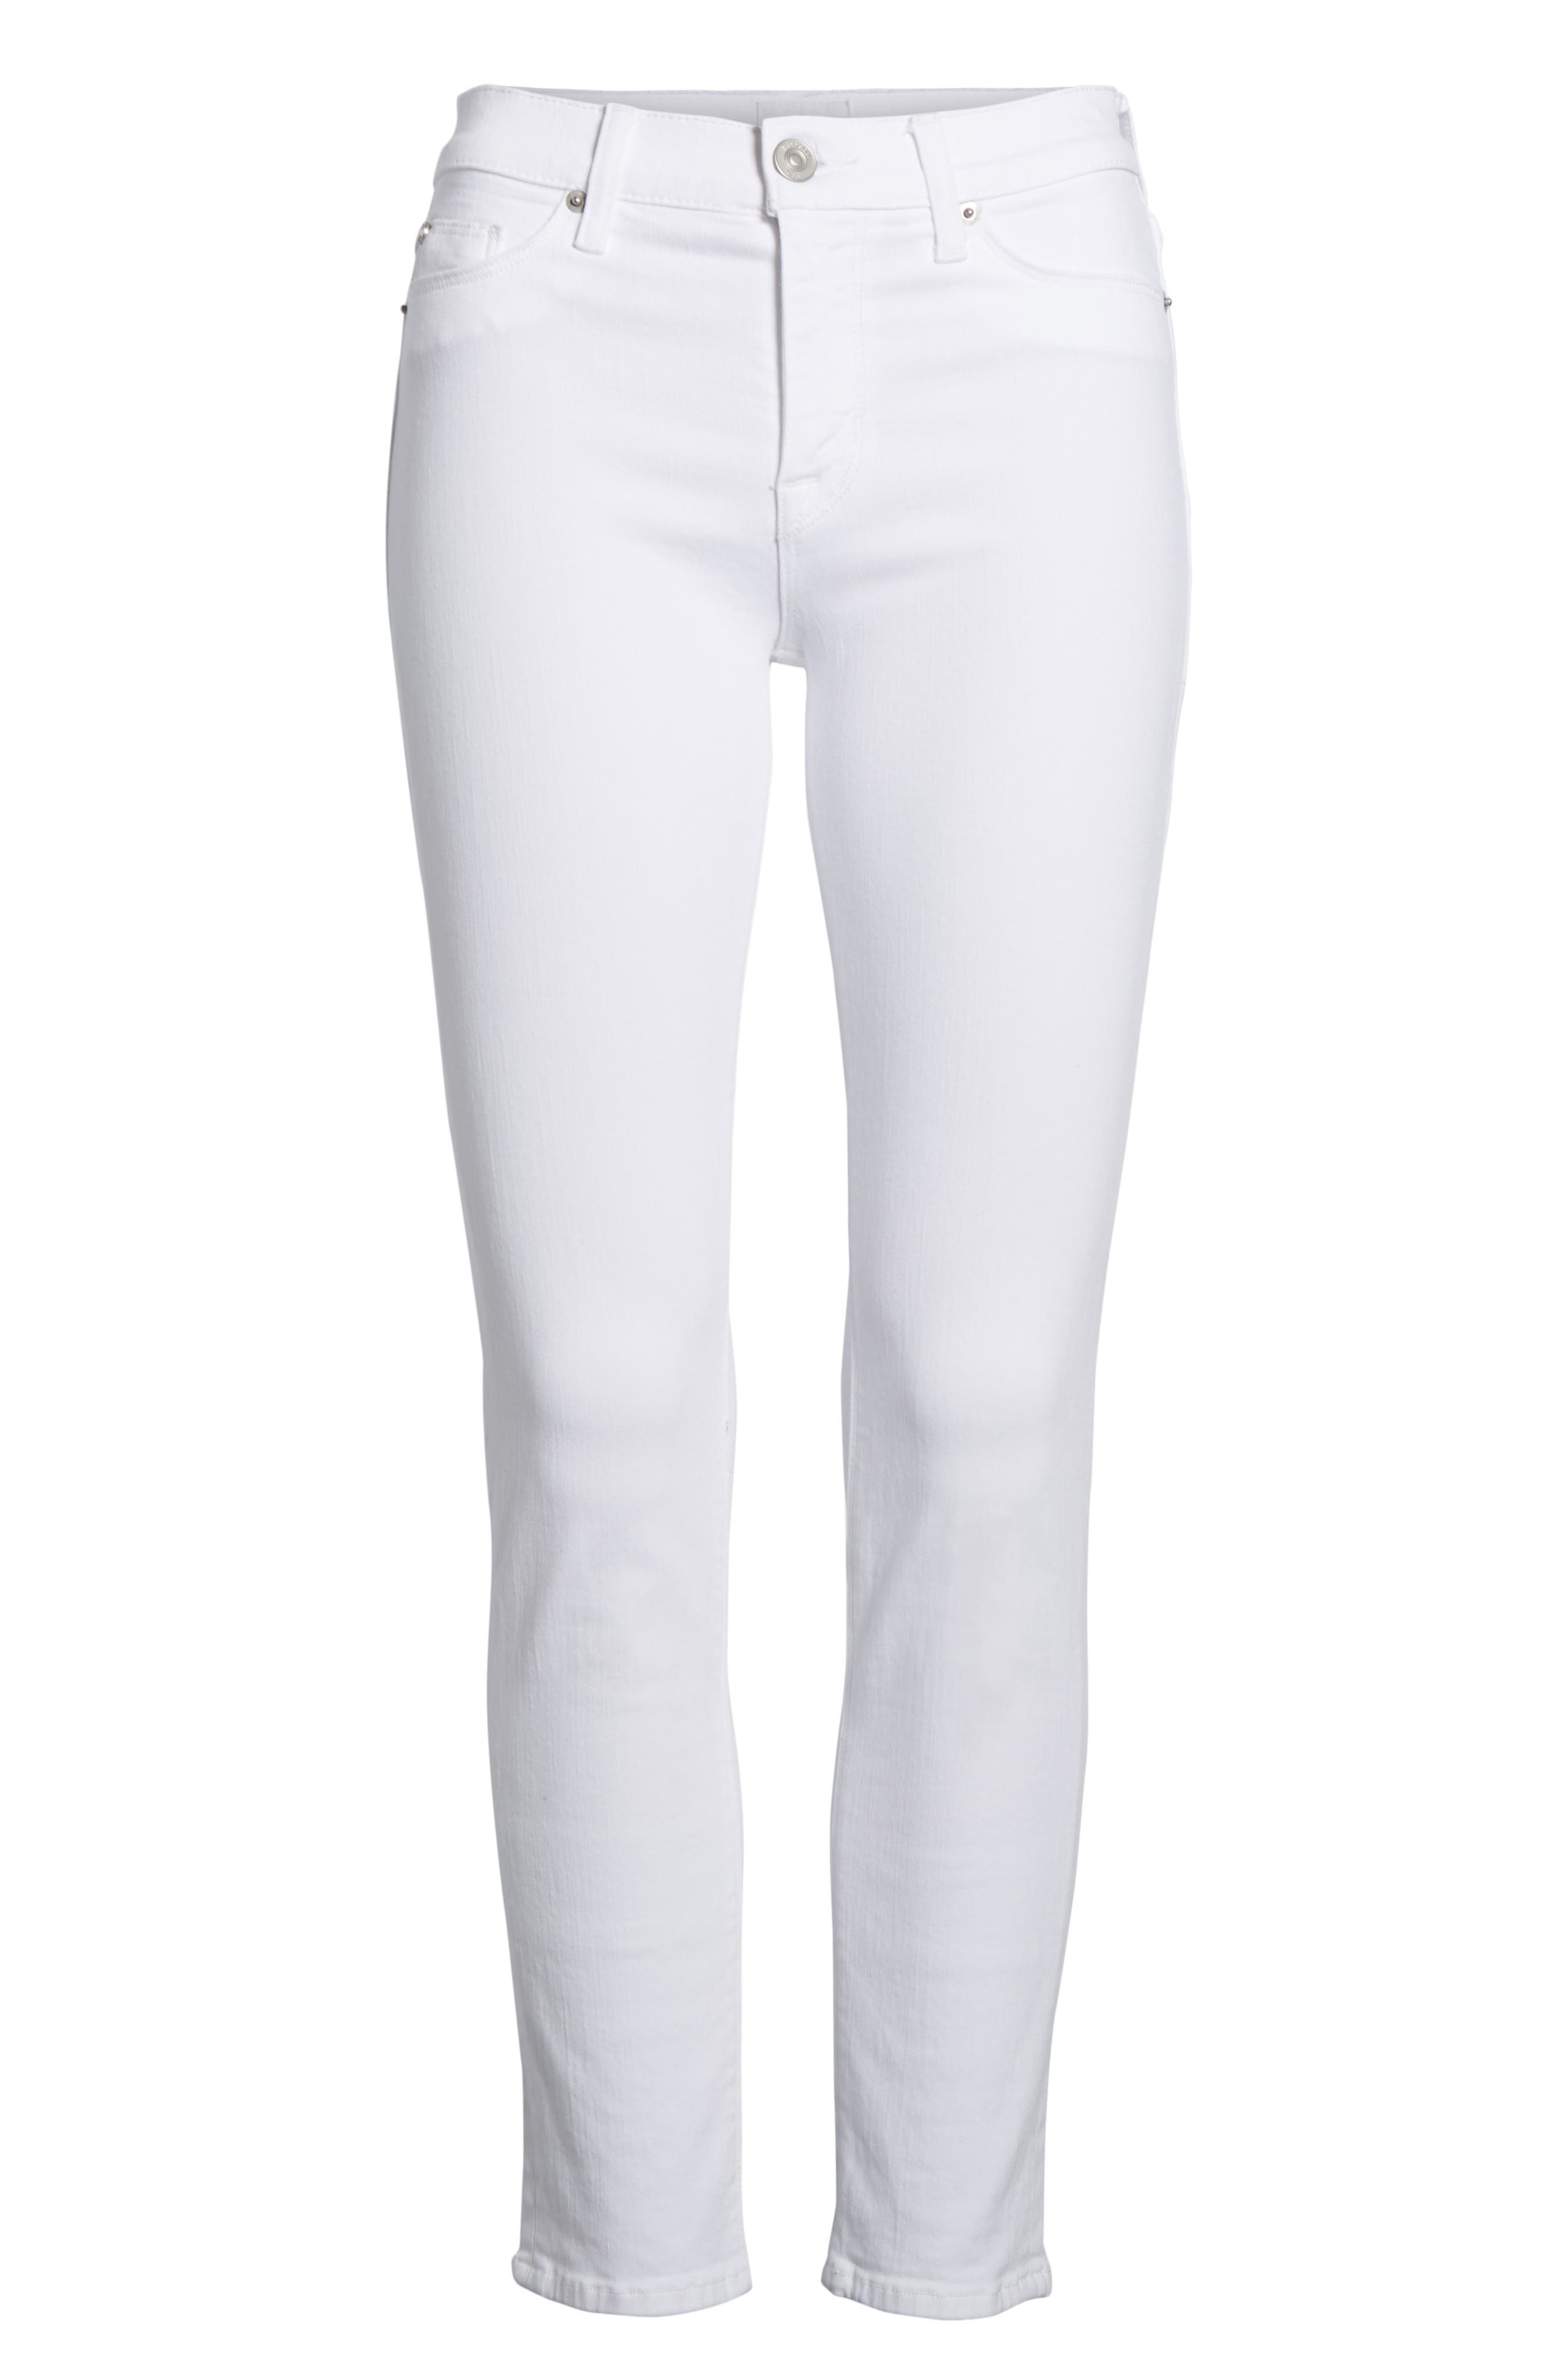 Tally Ankle Skinny Jeans,                             Alternate thumbnail 7, color,                             Optical White